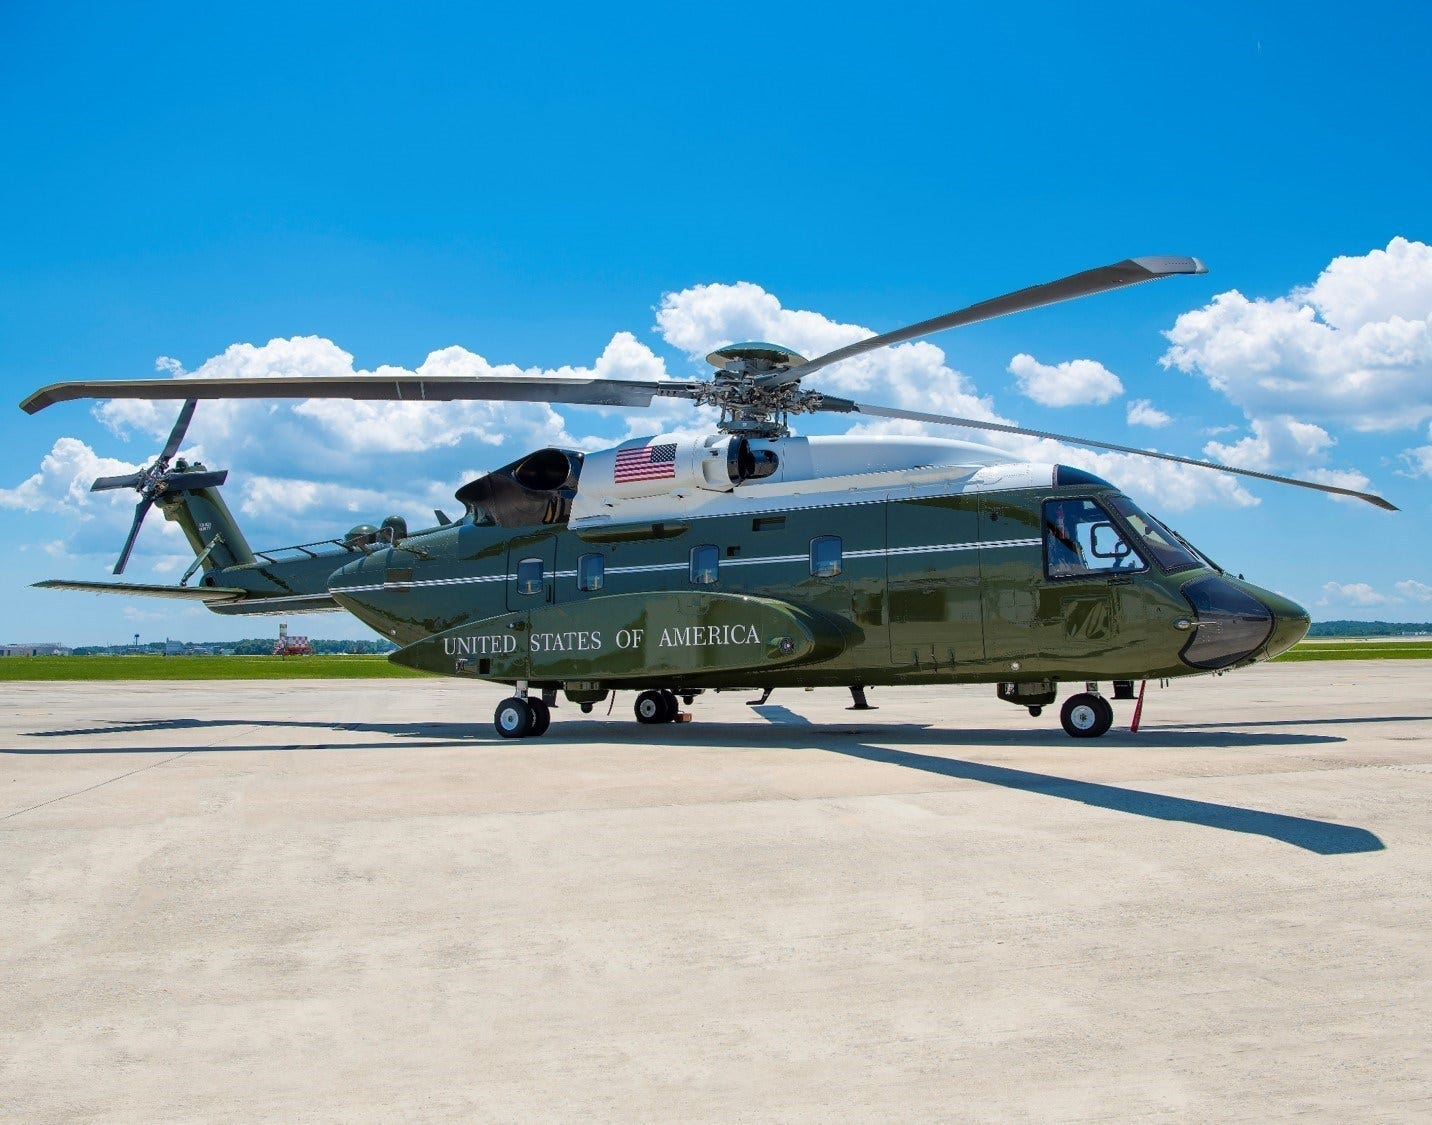 Lockheed Martin gets second contract for Presidential Helicopters